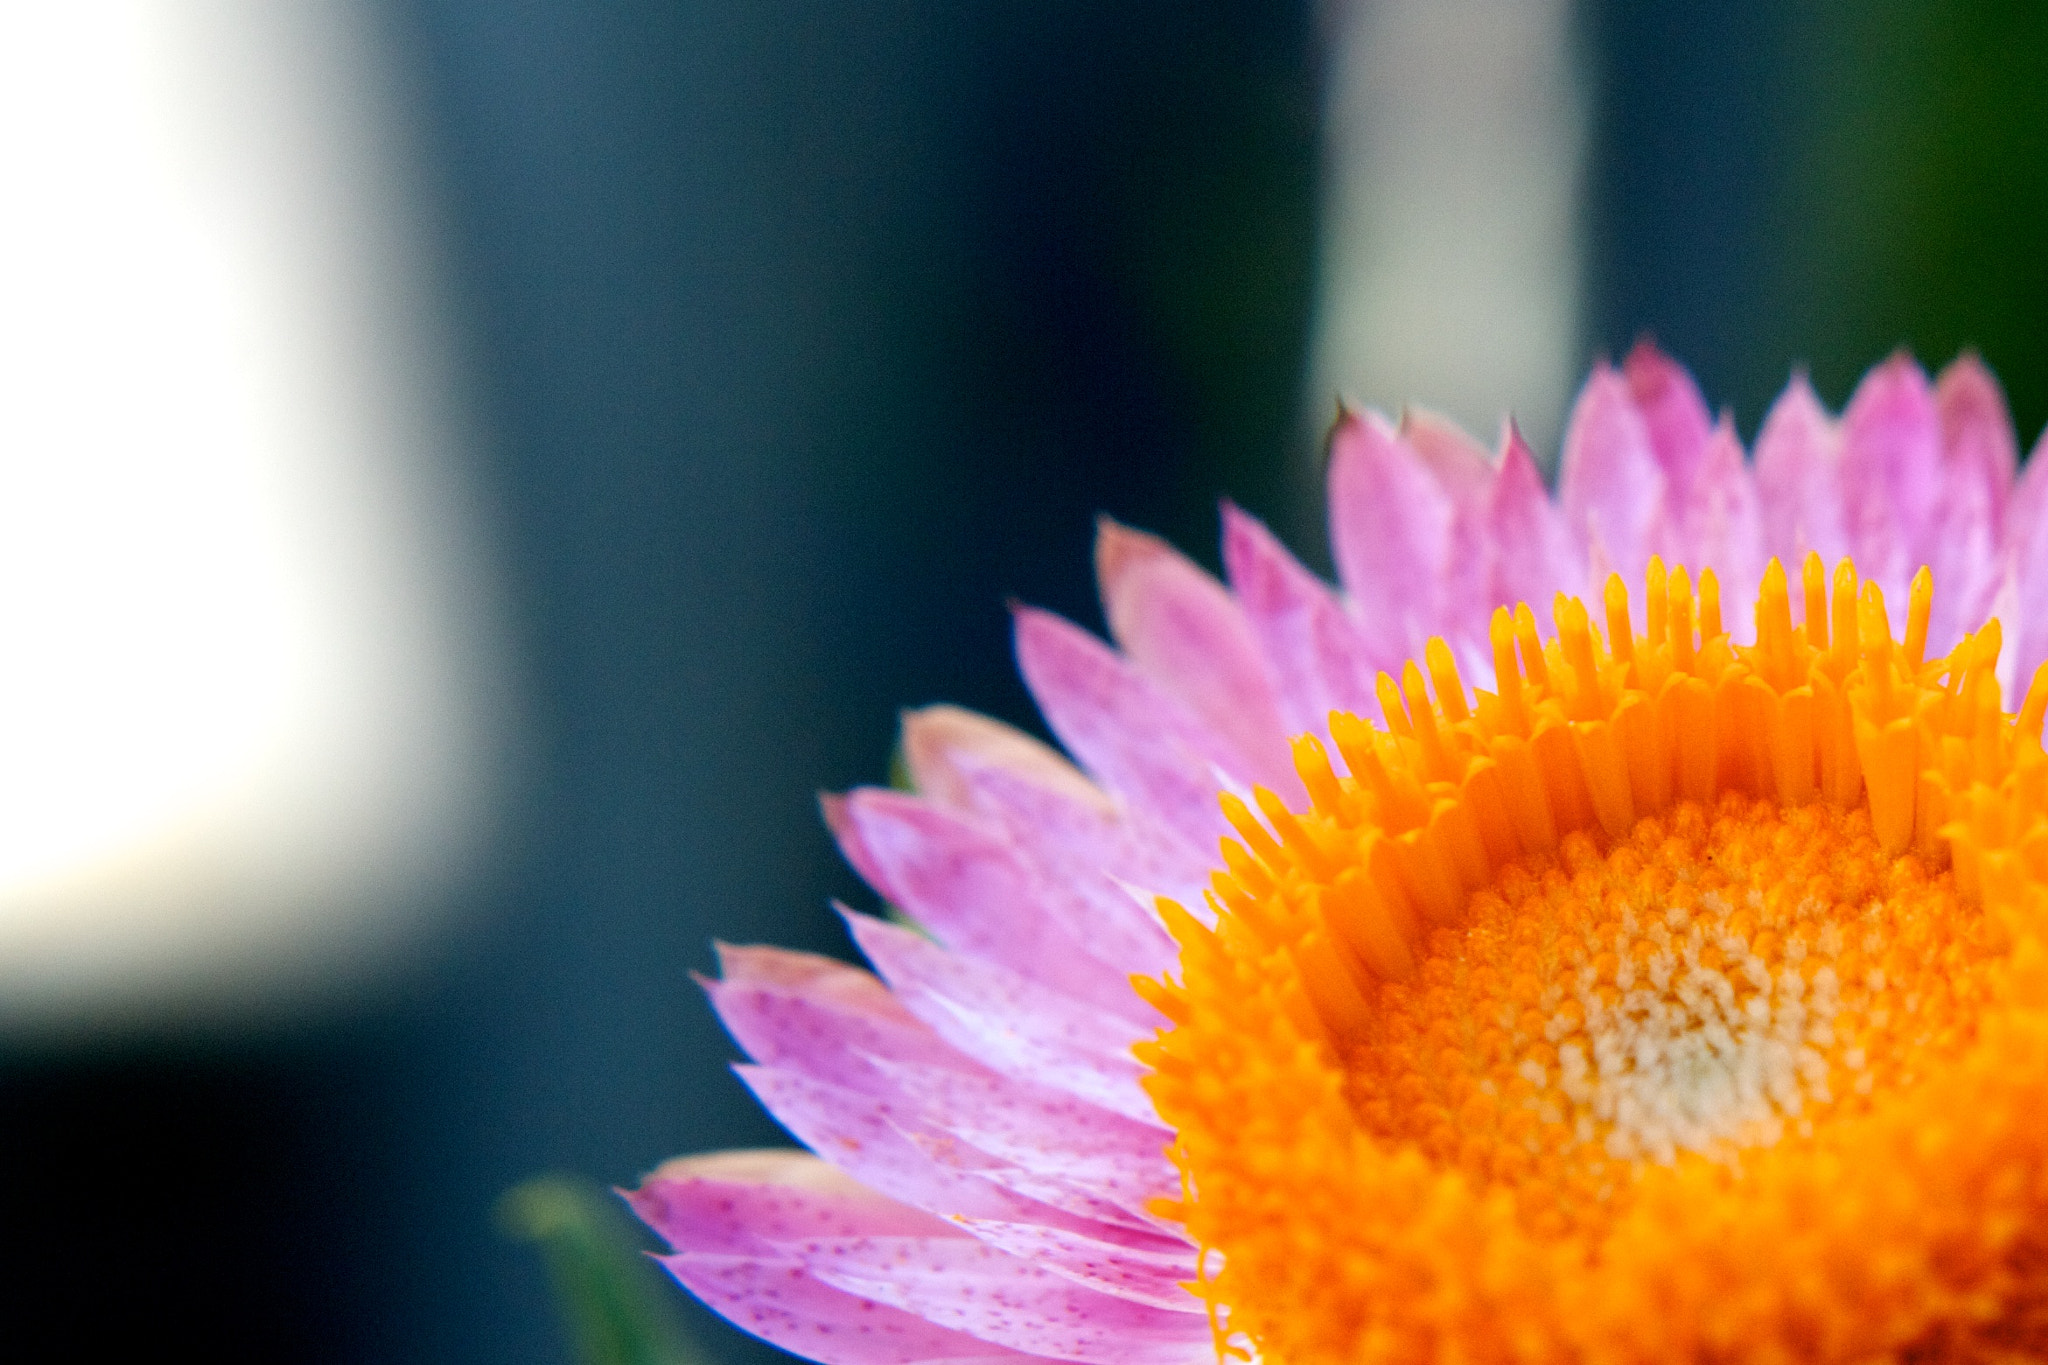 Photograph Flower with spots by Darko Kontin on 500px